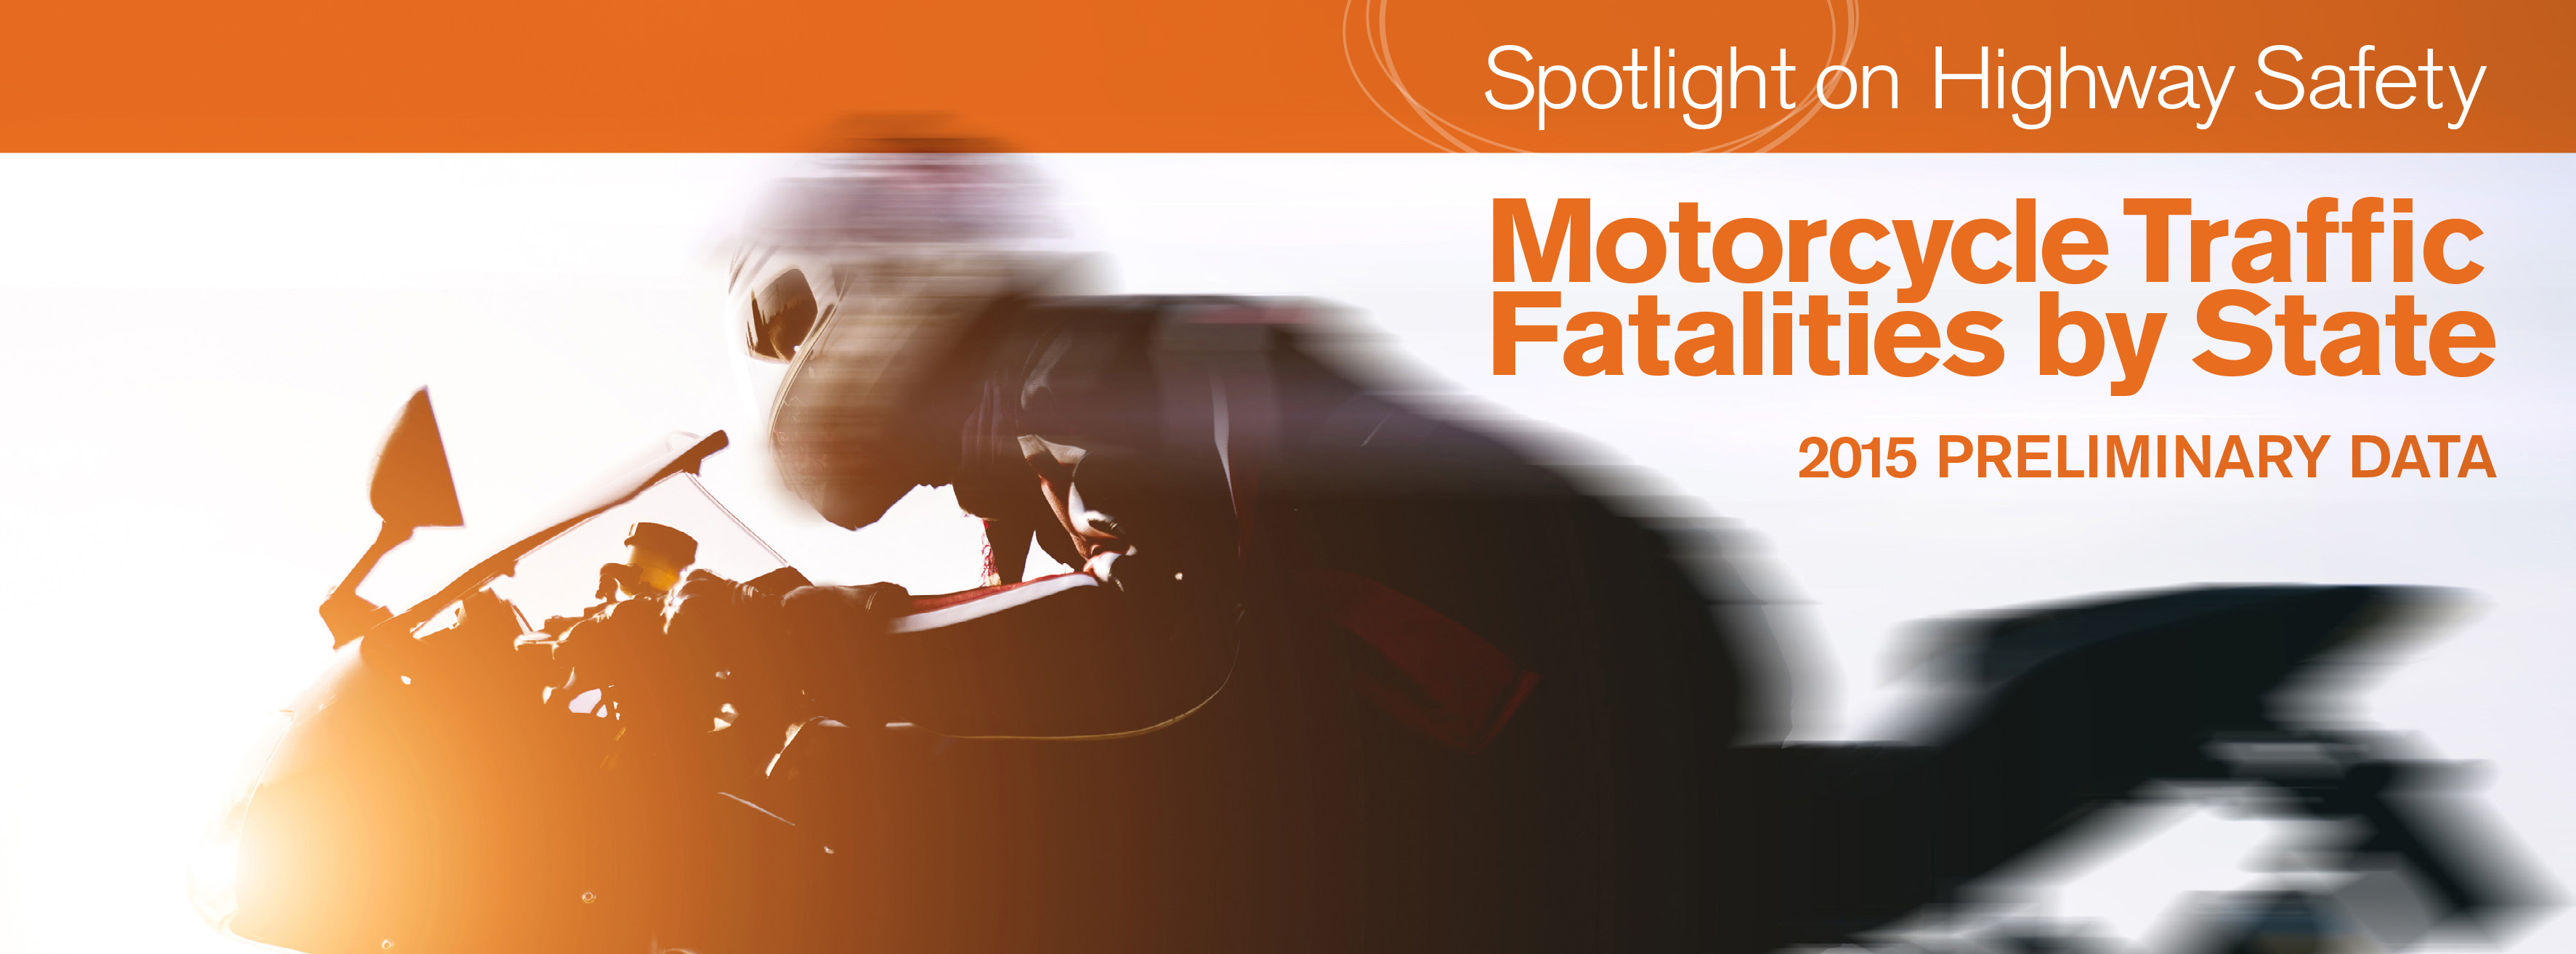 Motorcyclist Traffic Fatalities by State: 2015 Preliminary Data